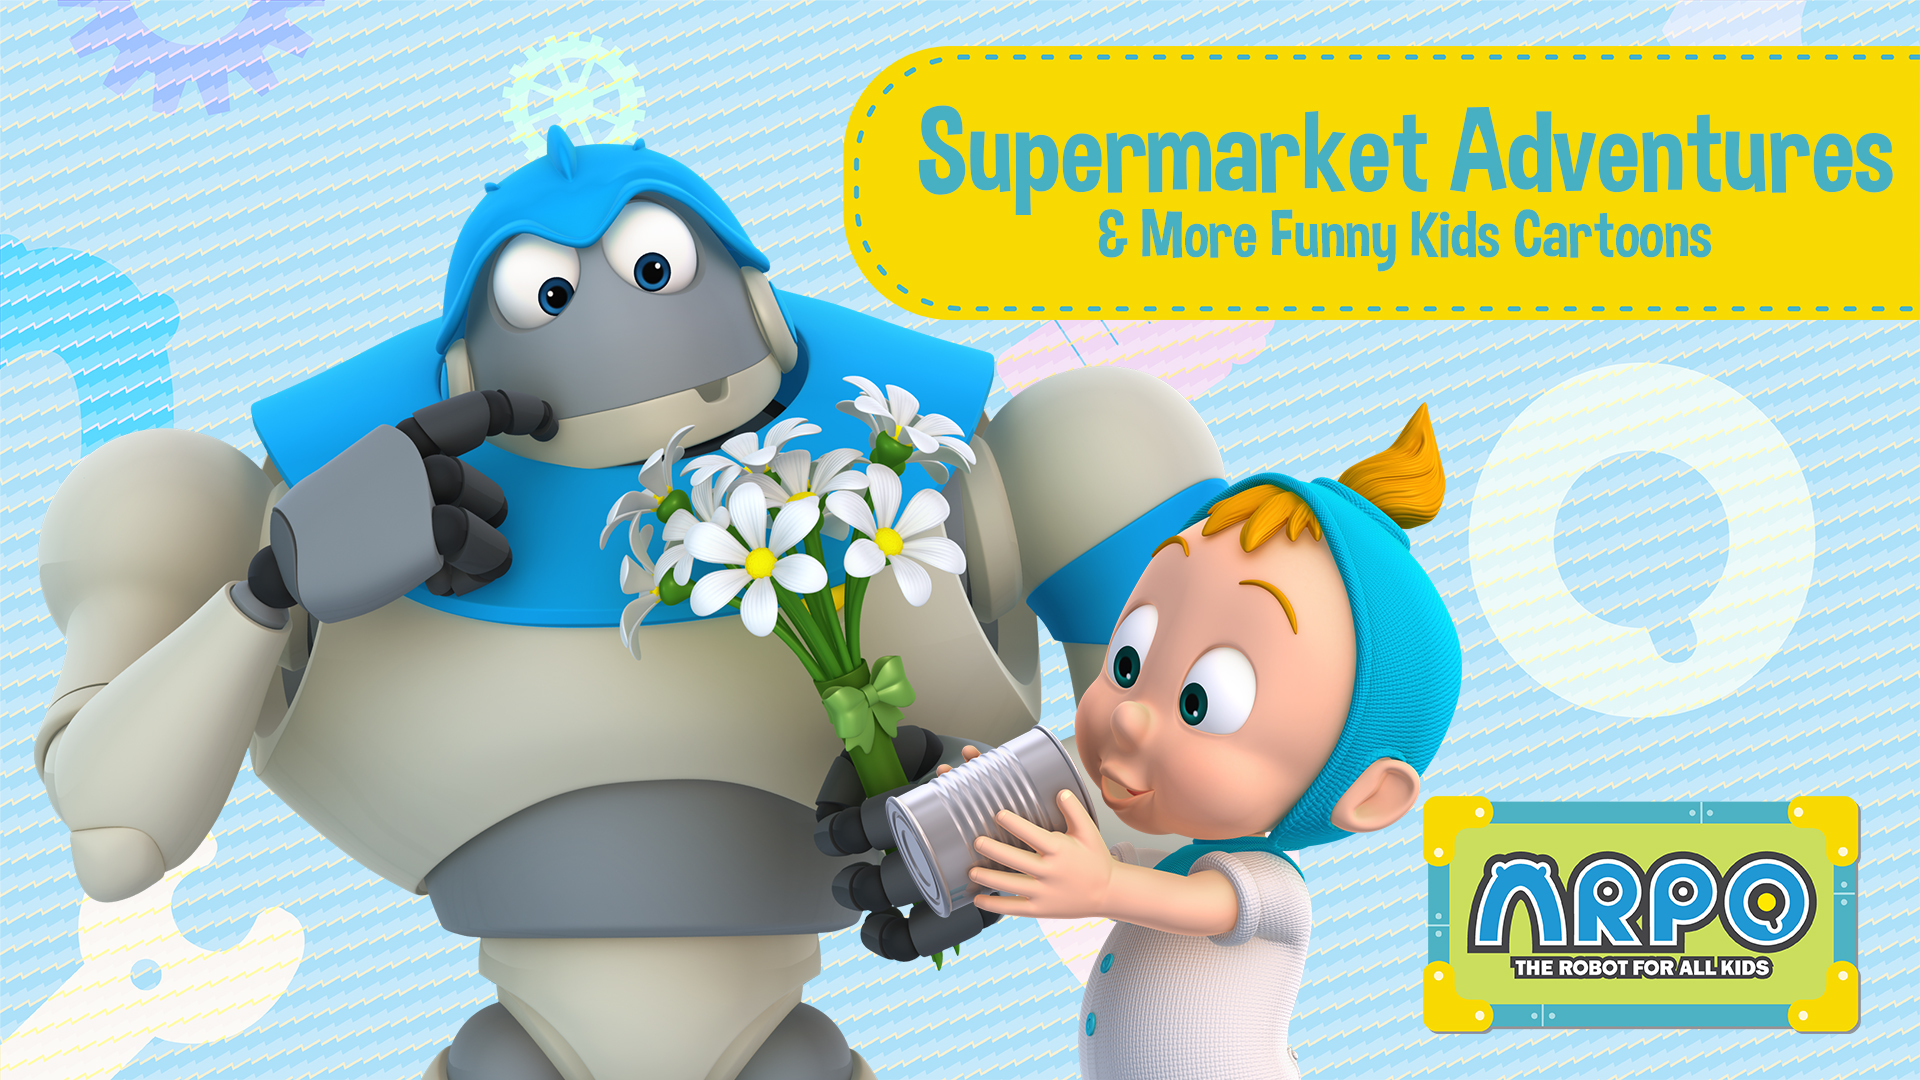 Arpo the Robot for All Kids - Supermarket Adventures & More Funny Kids Cartoons